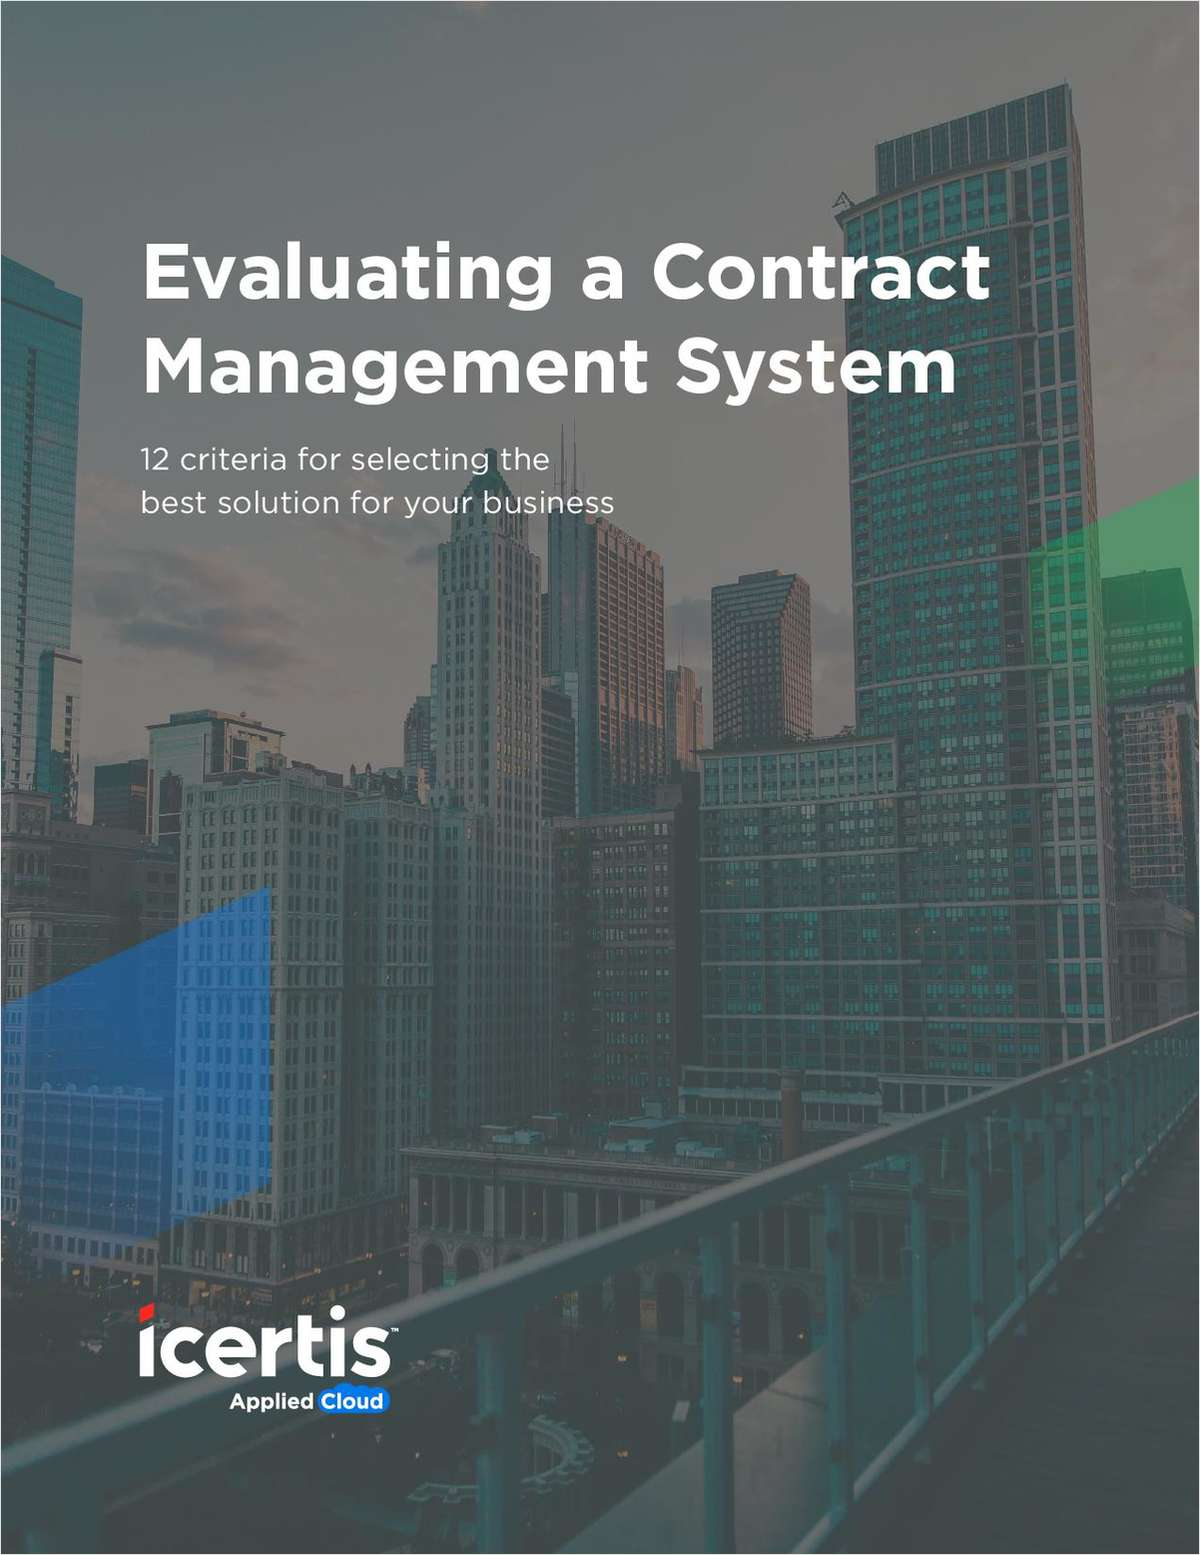 Evaluating a Contract Management System